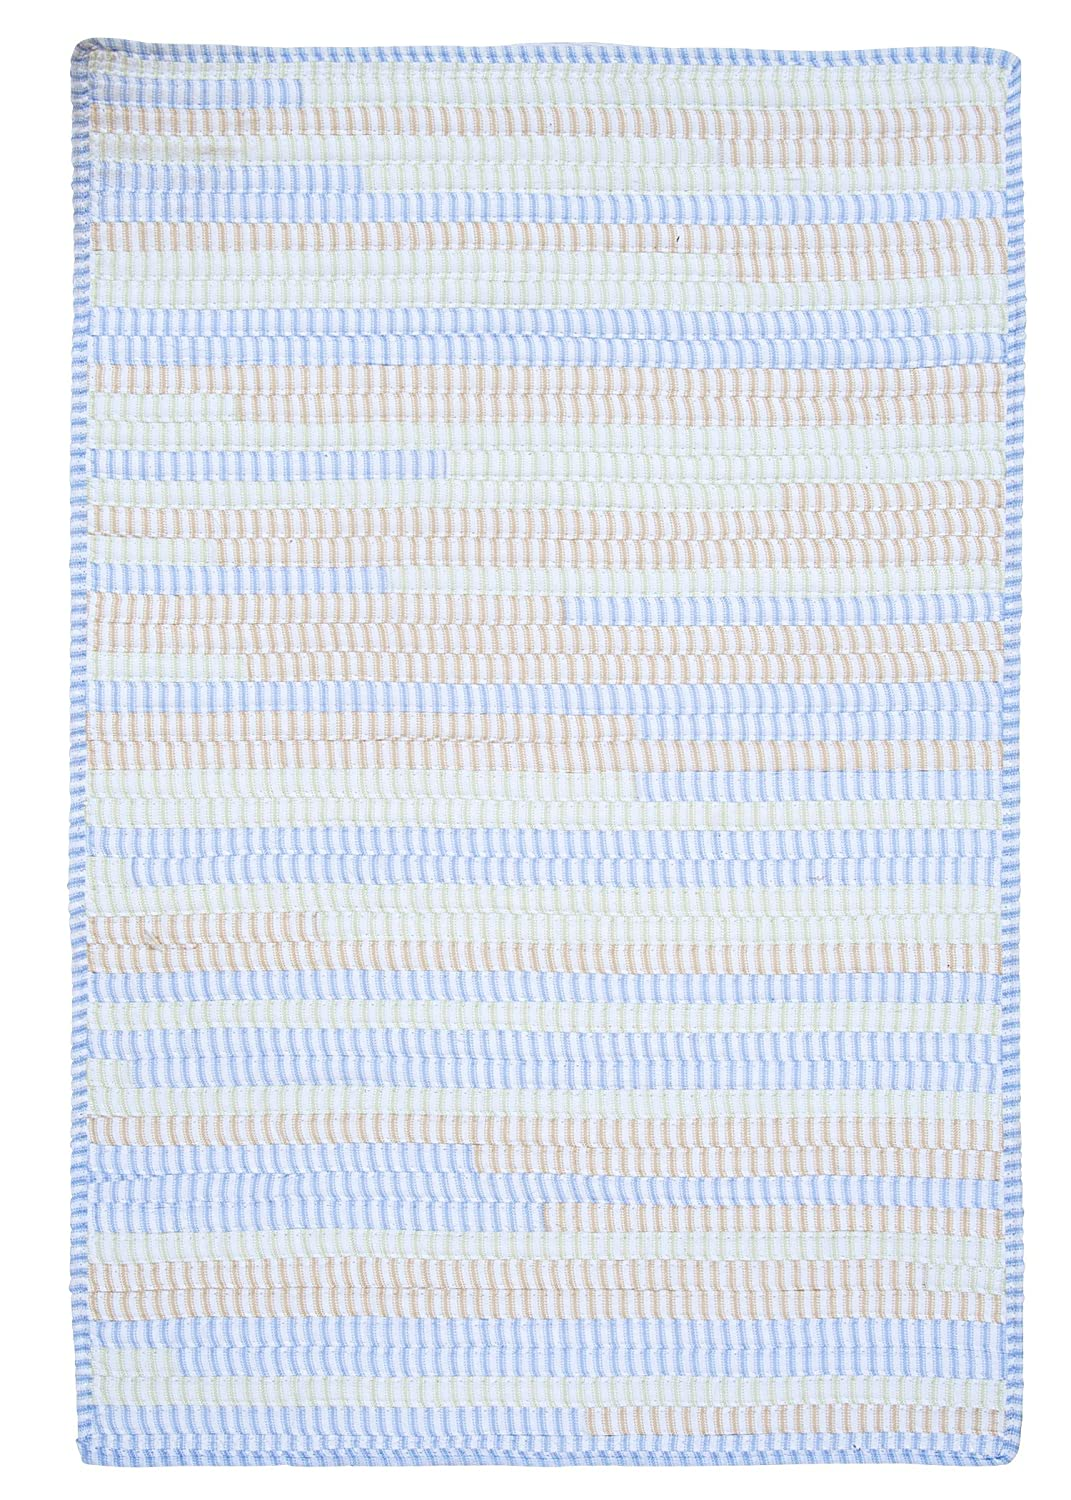 14 x 17 Starlight Blue Colonial Mills Ticking Stripe TK58SAMPLEB Sample Swatch Rugs